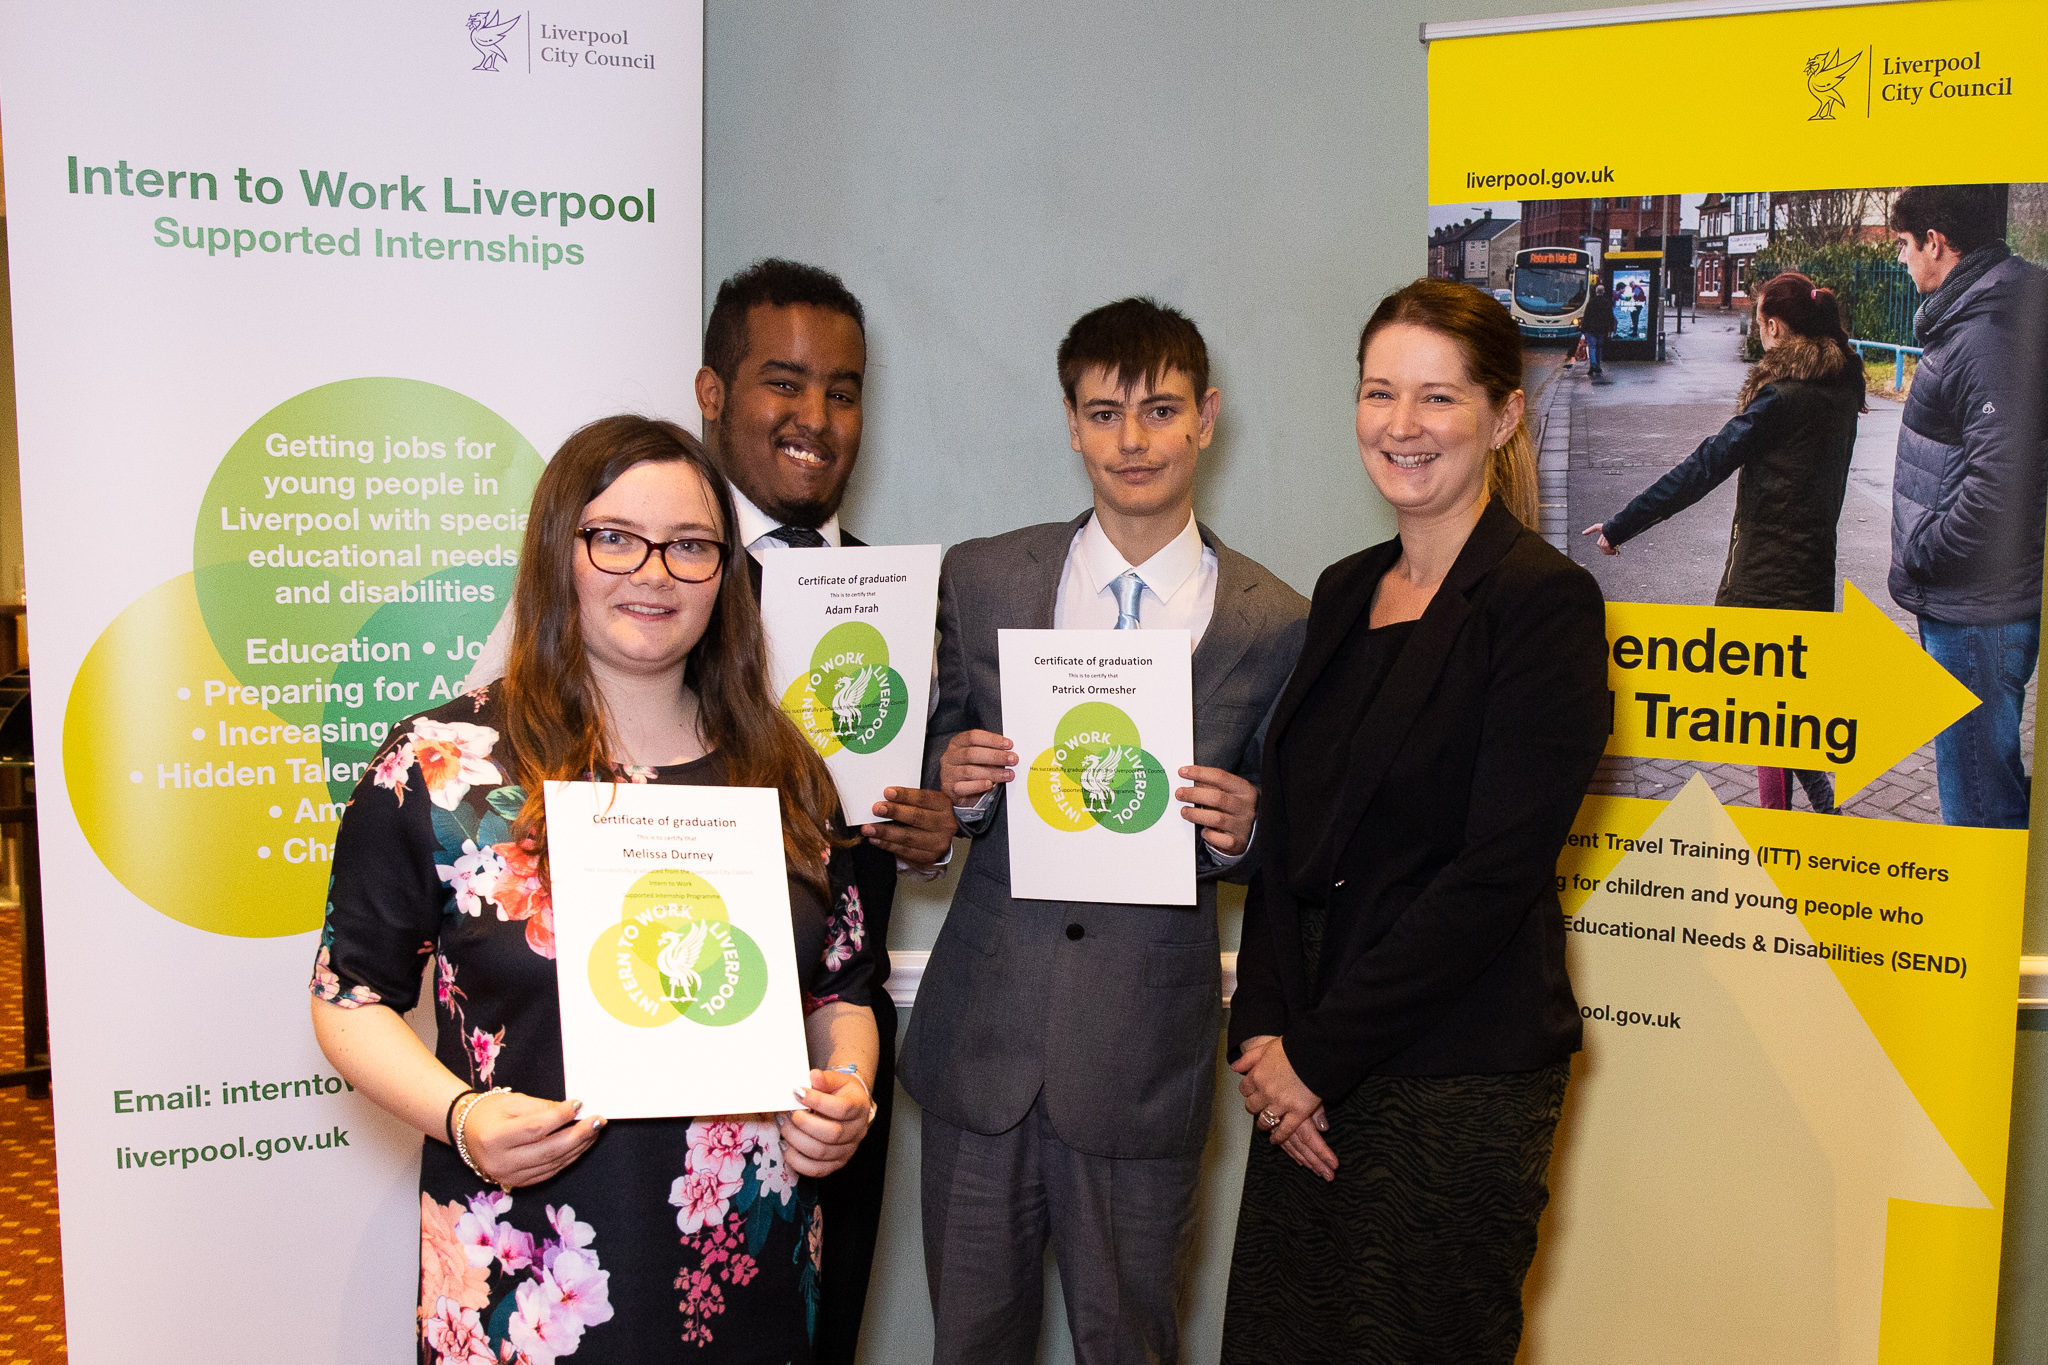 Melissa, Adam and Patrick, supported interns with their graduation certificates, with Becky Cooper, HR Manager from the Marriott Hotel.